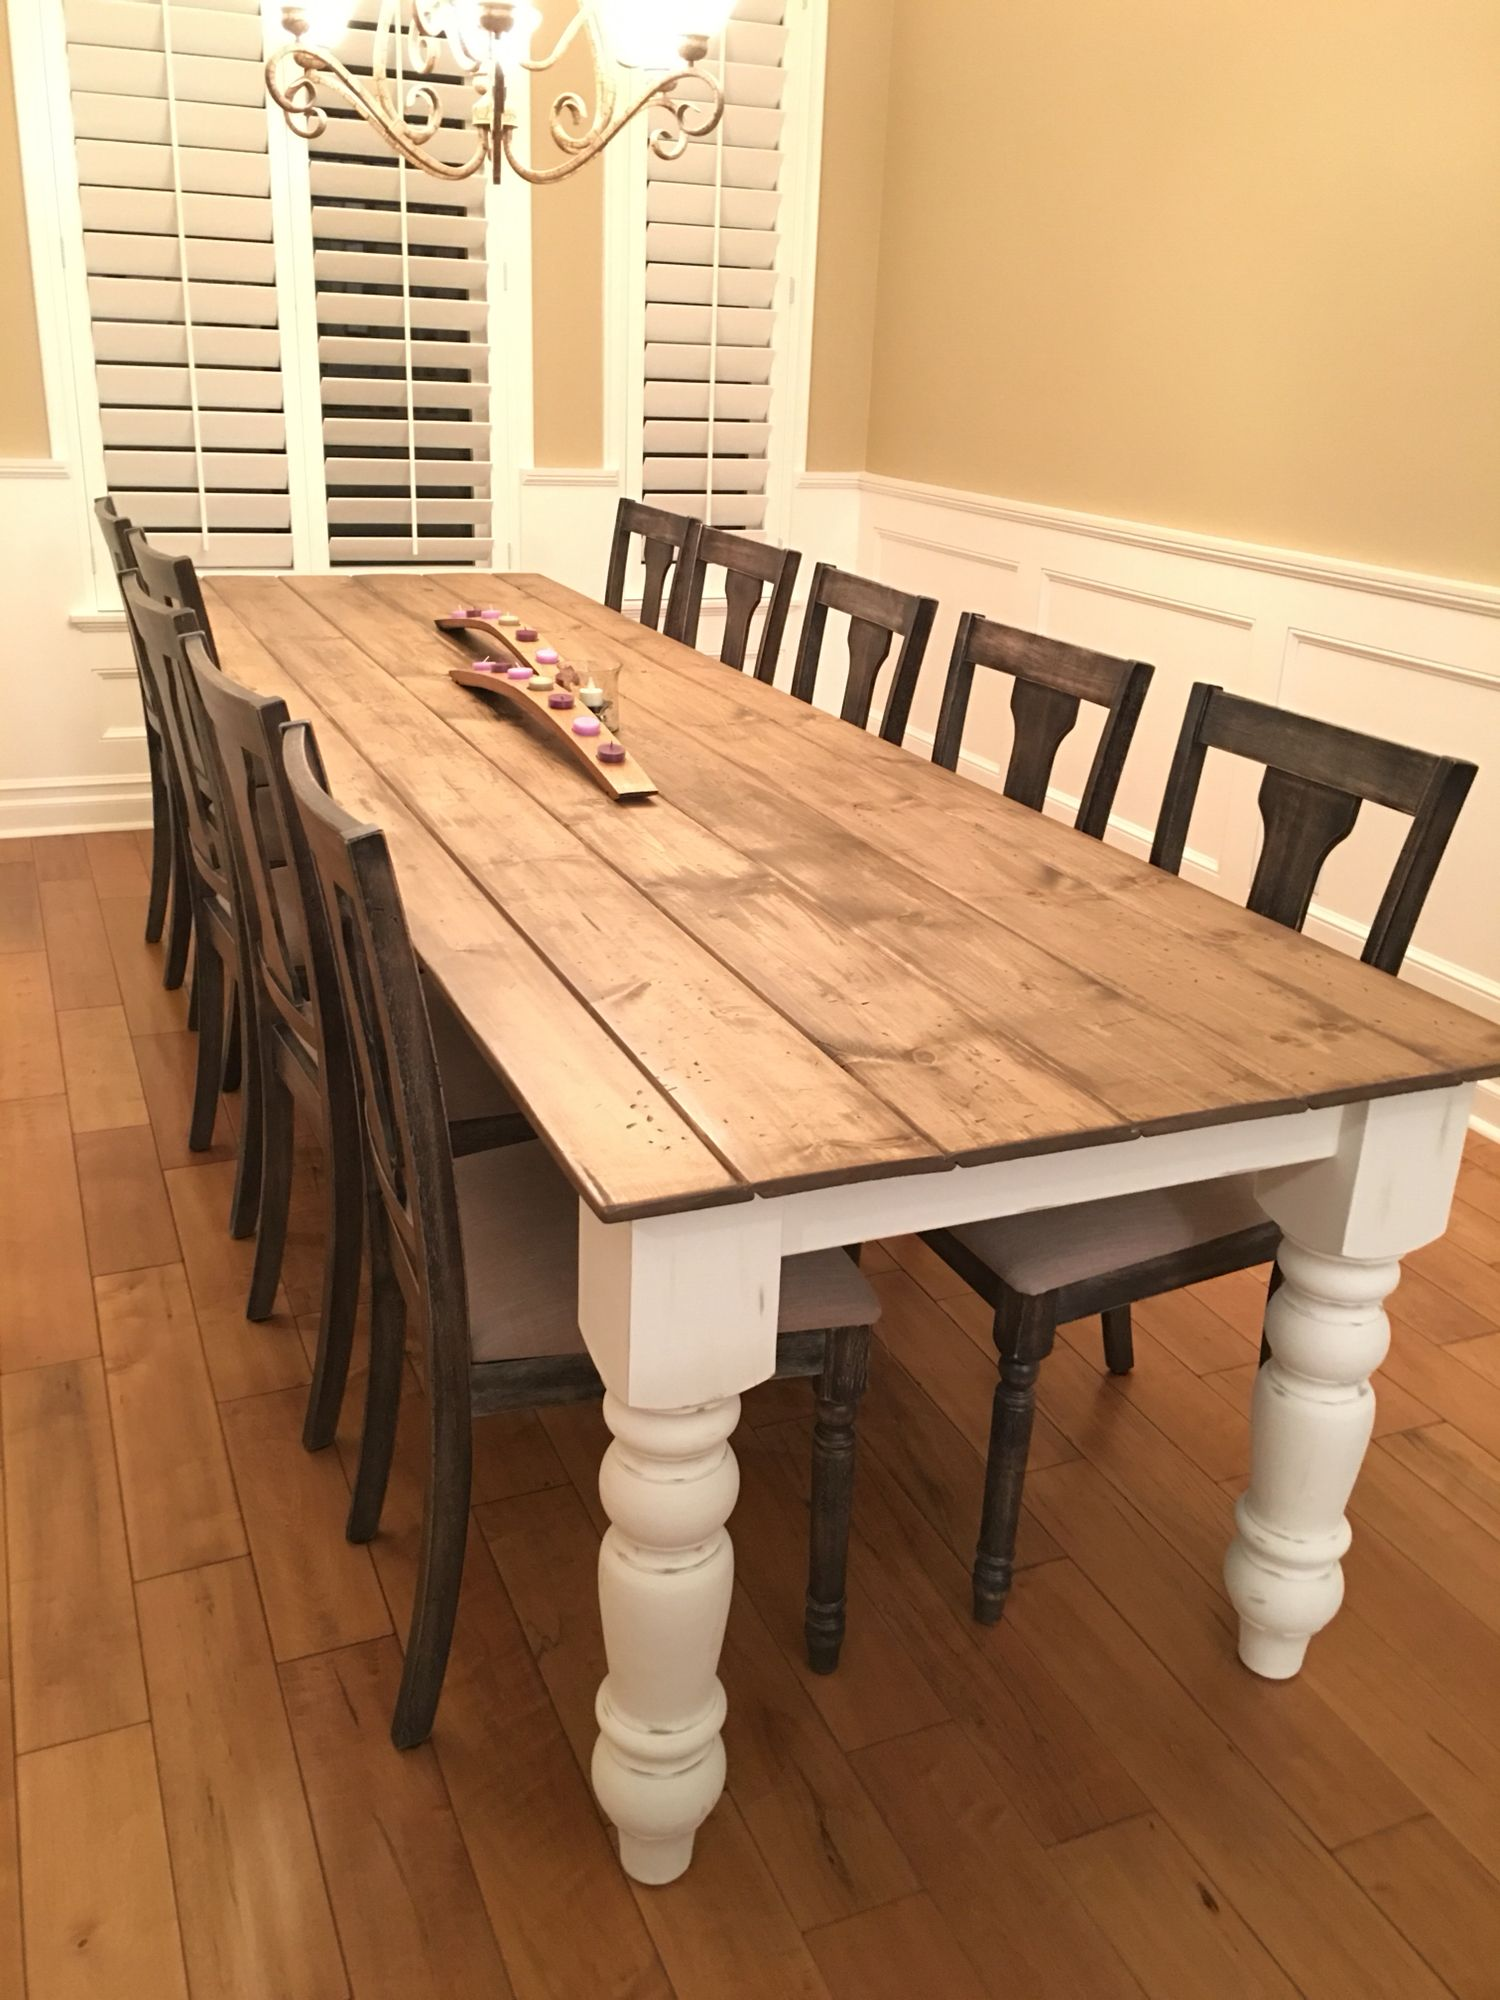 Diy Farmhouse Table My Husband Made My 10 Foot 8 Inch Farmhouse Table Top Made With Farmhouse Table Plans Farmhouse Dining Room Table Farmhouse Dining Room